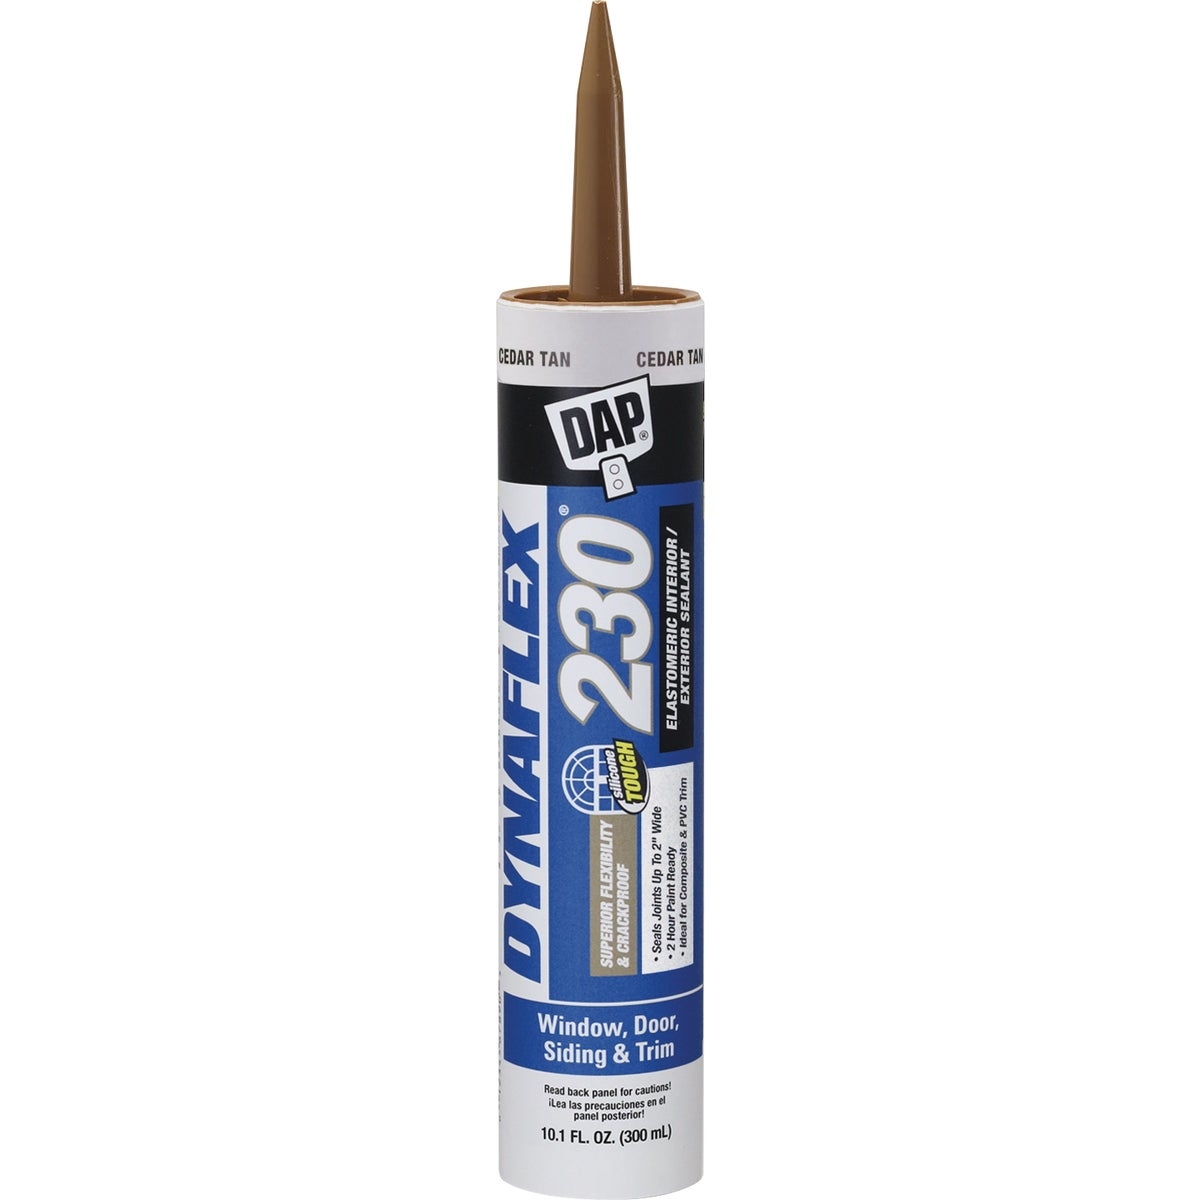 CEDR DYNAFLX LTX SEALANT - 18412 by Dap Inc